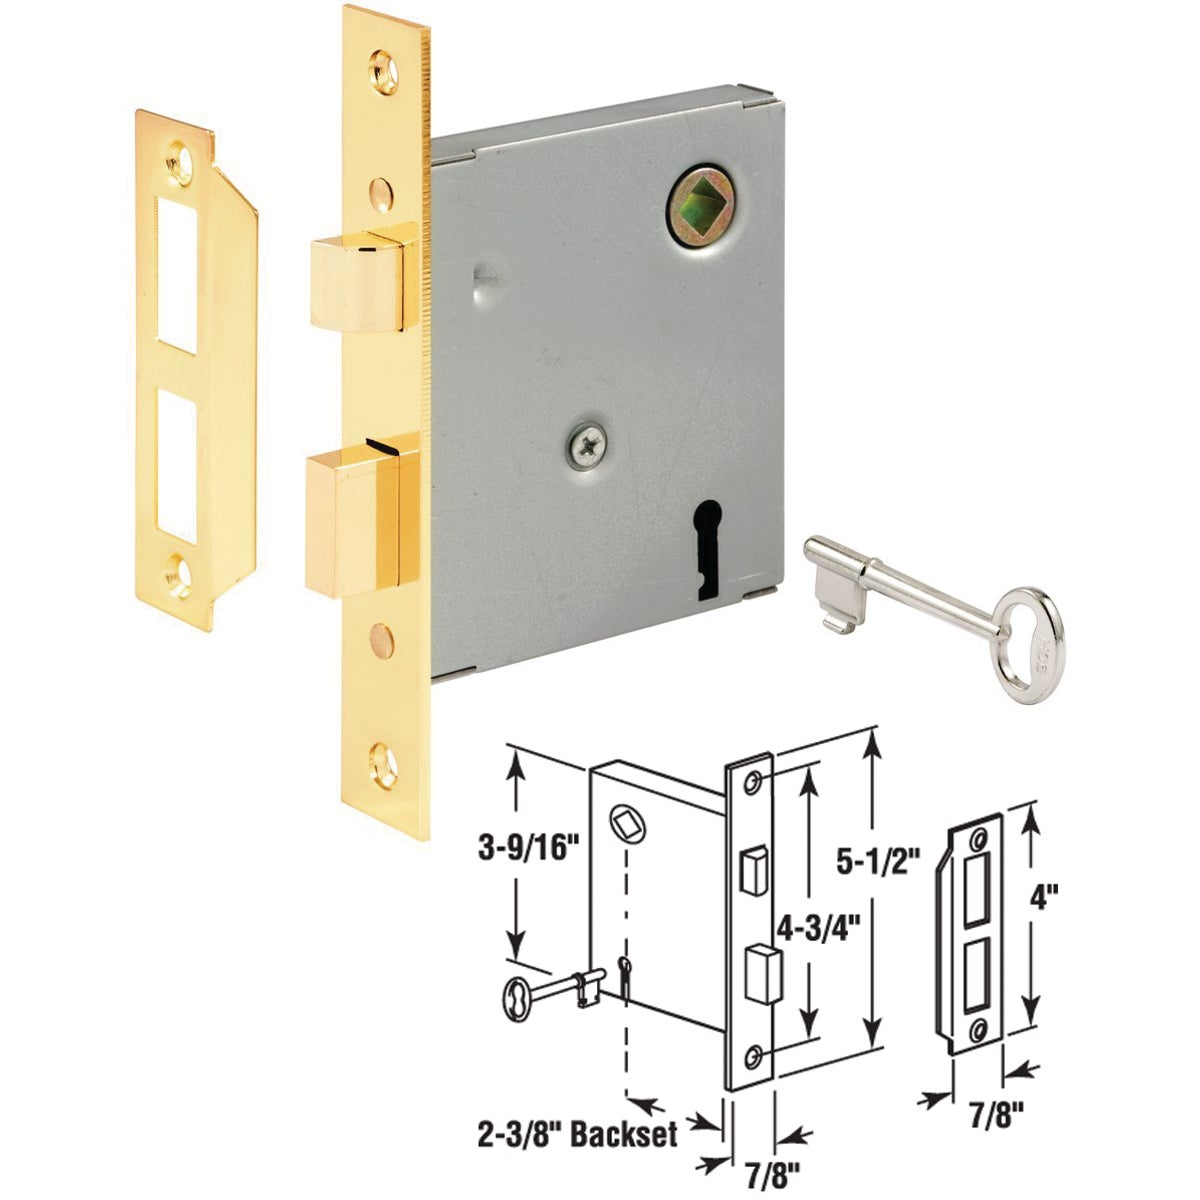 BIT KEY MORTISE LOCK - E 2294 by Prime Line Products